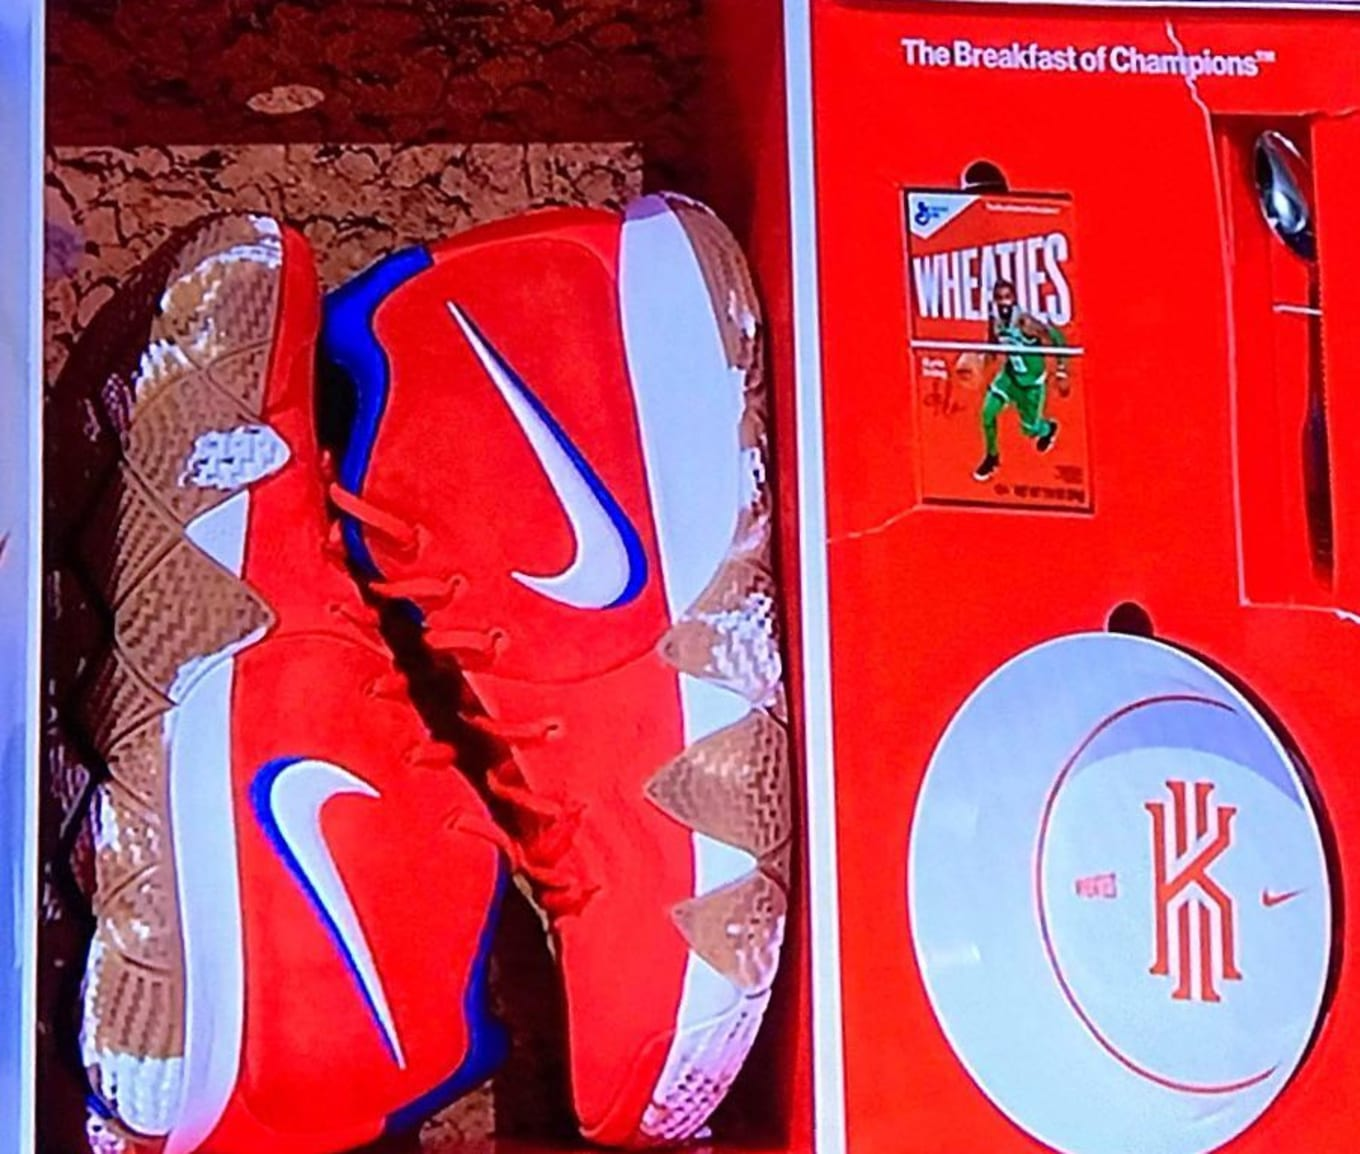 info for 9ad32 e5e47 Nike Kyrie 4 Wheaties Limited to 100 Pairs  Sole Collector